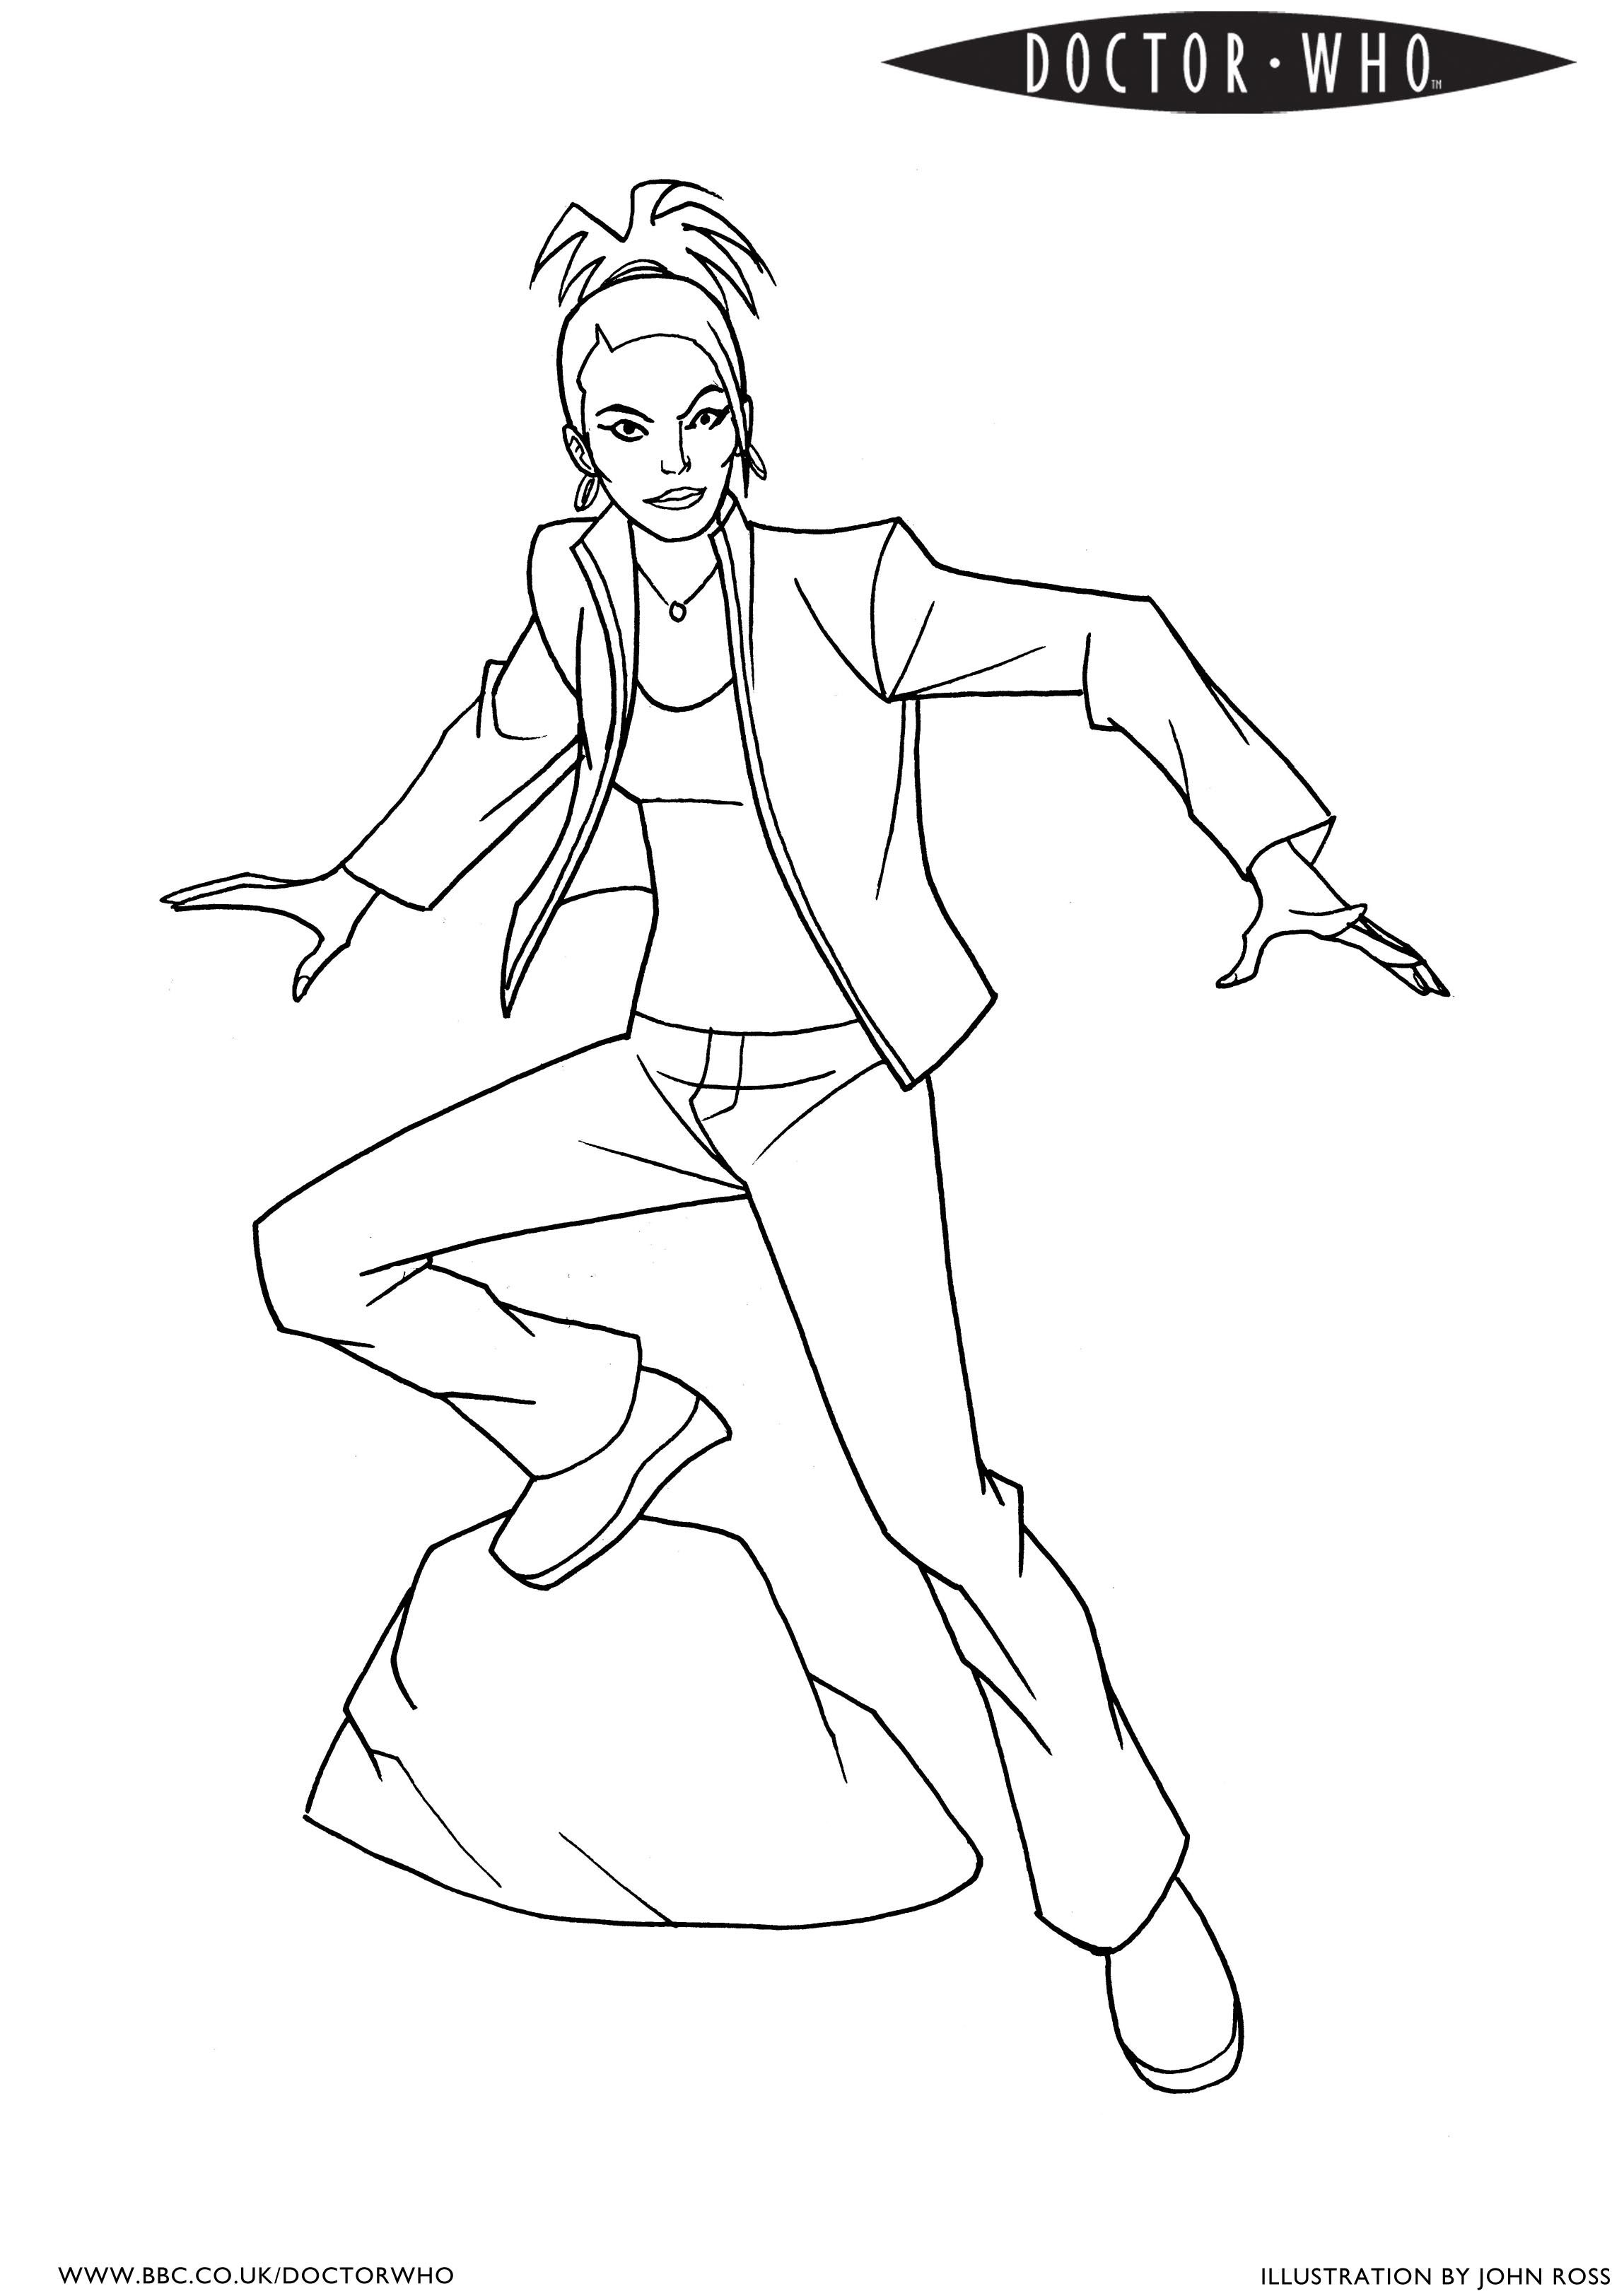 Doctor Who Coloring Pages New Bbc Doctor Who Coloring Page